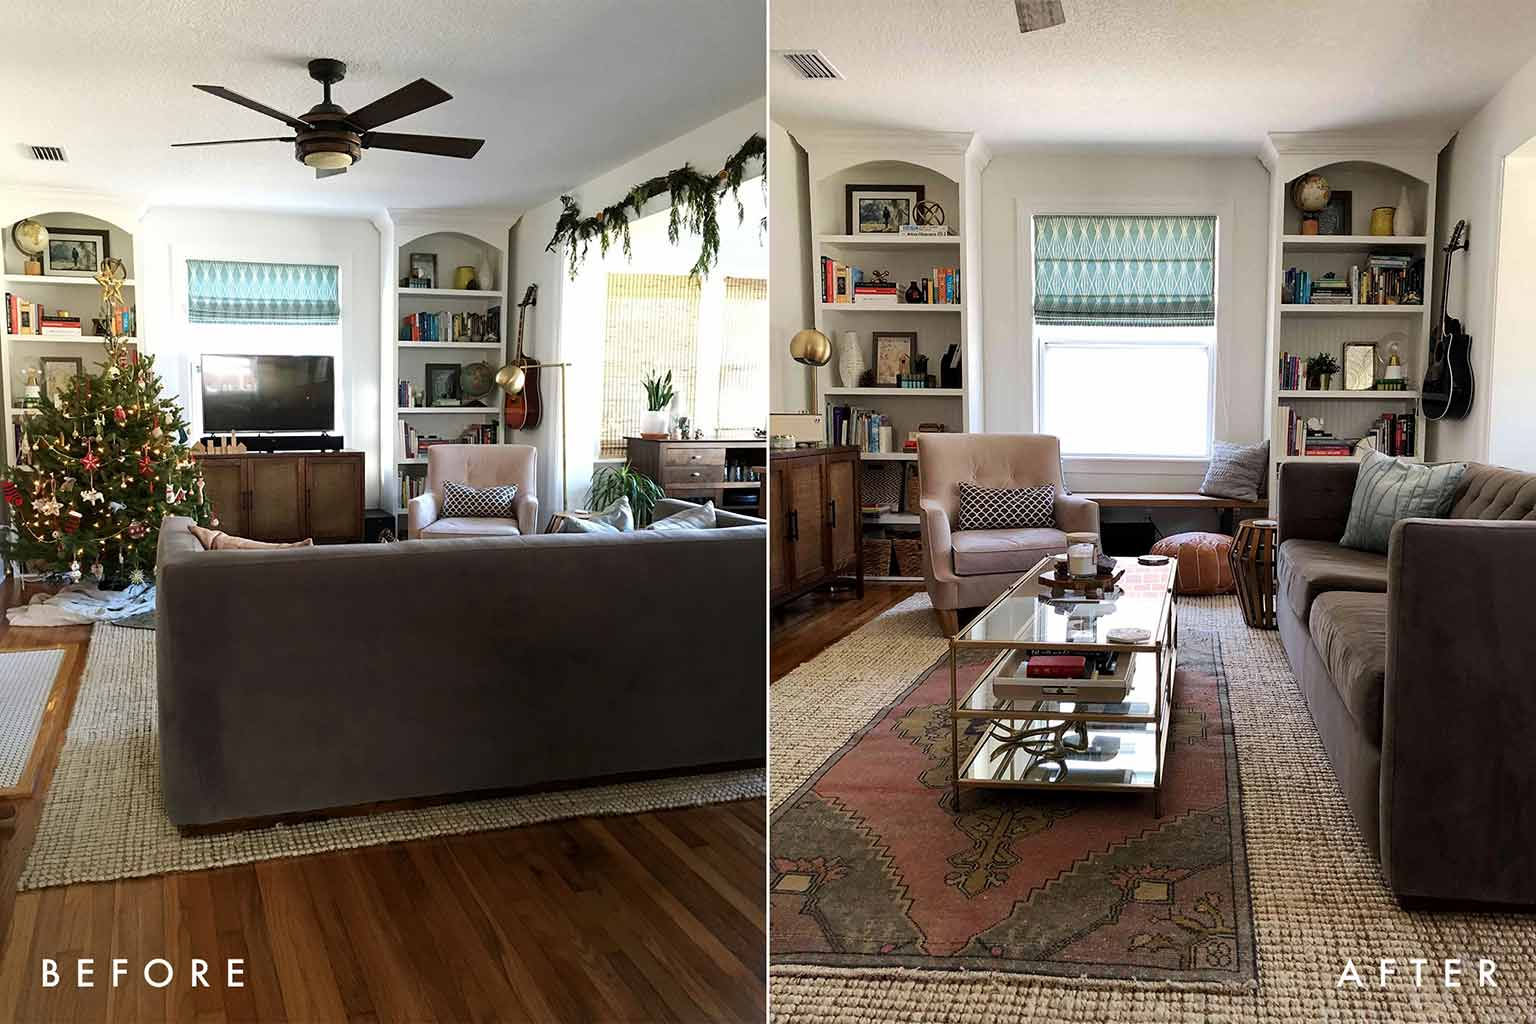 Living Room Before and After - The One Room Challenge - That Homebird Life Blog